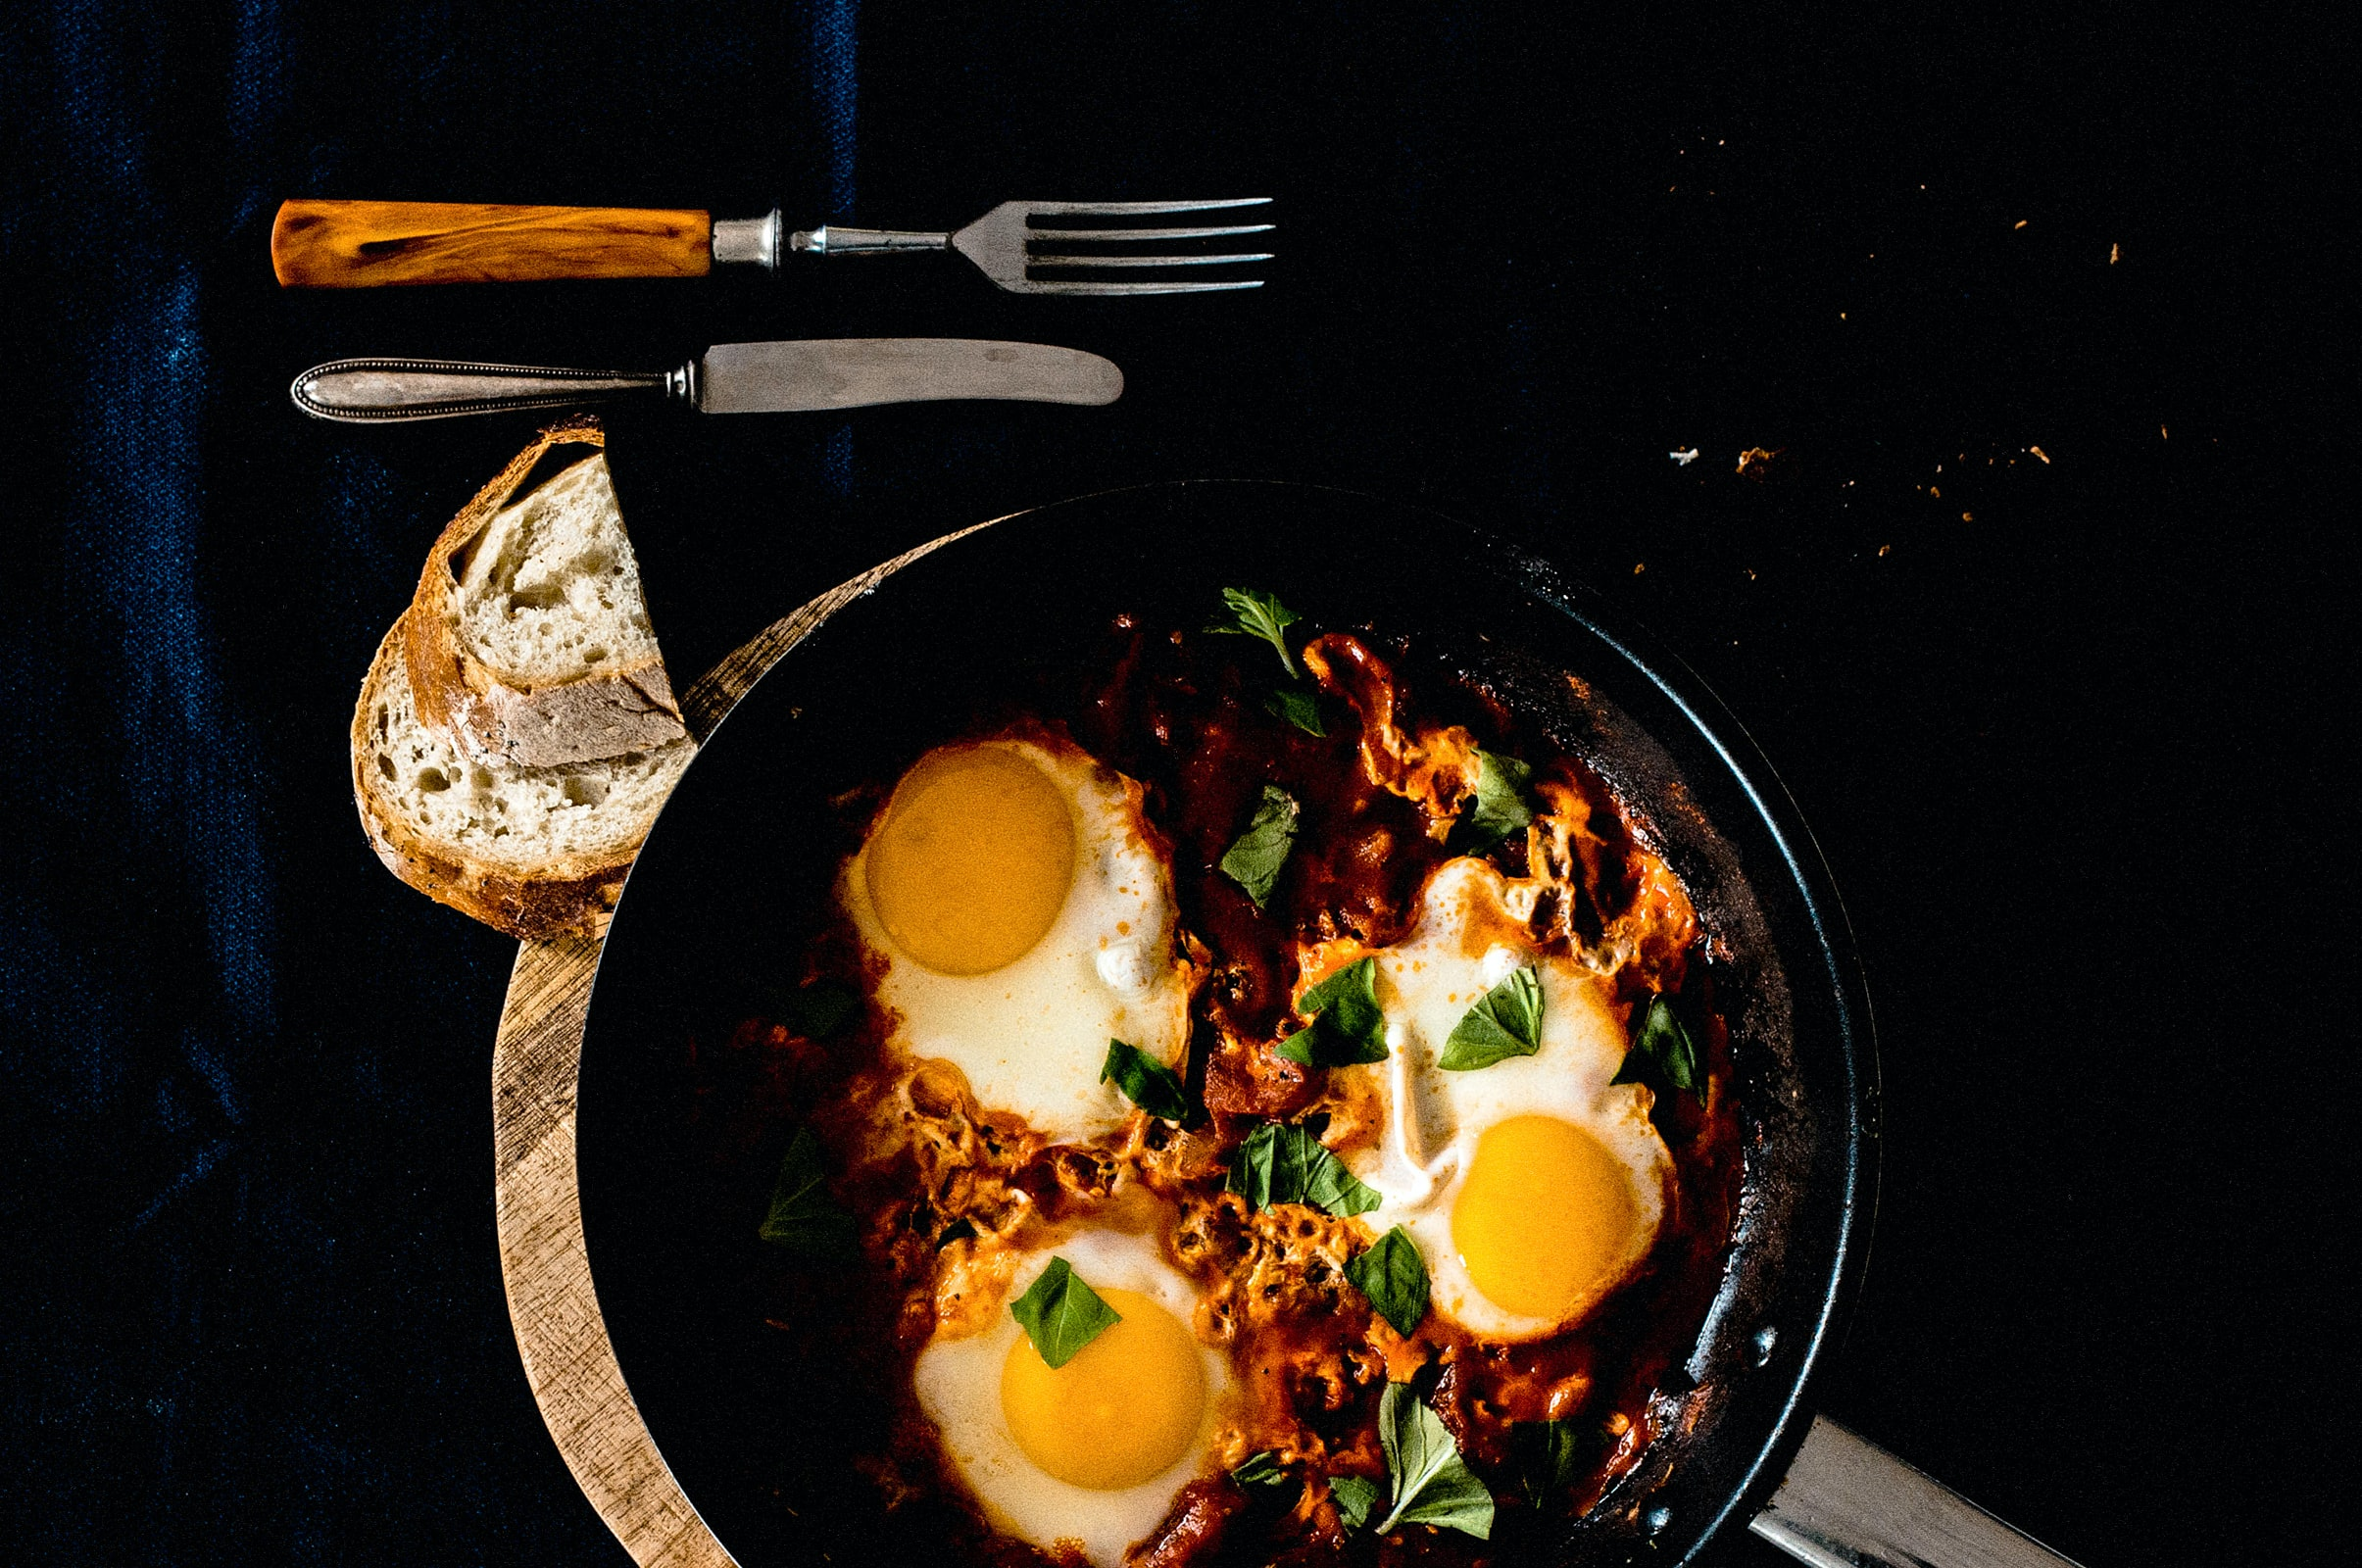 Middle eastern shakshuka in a cast iron skillet